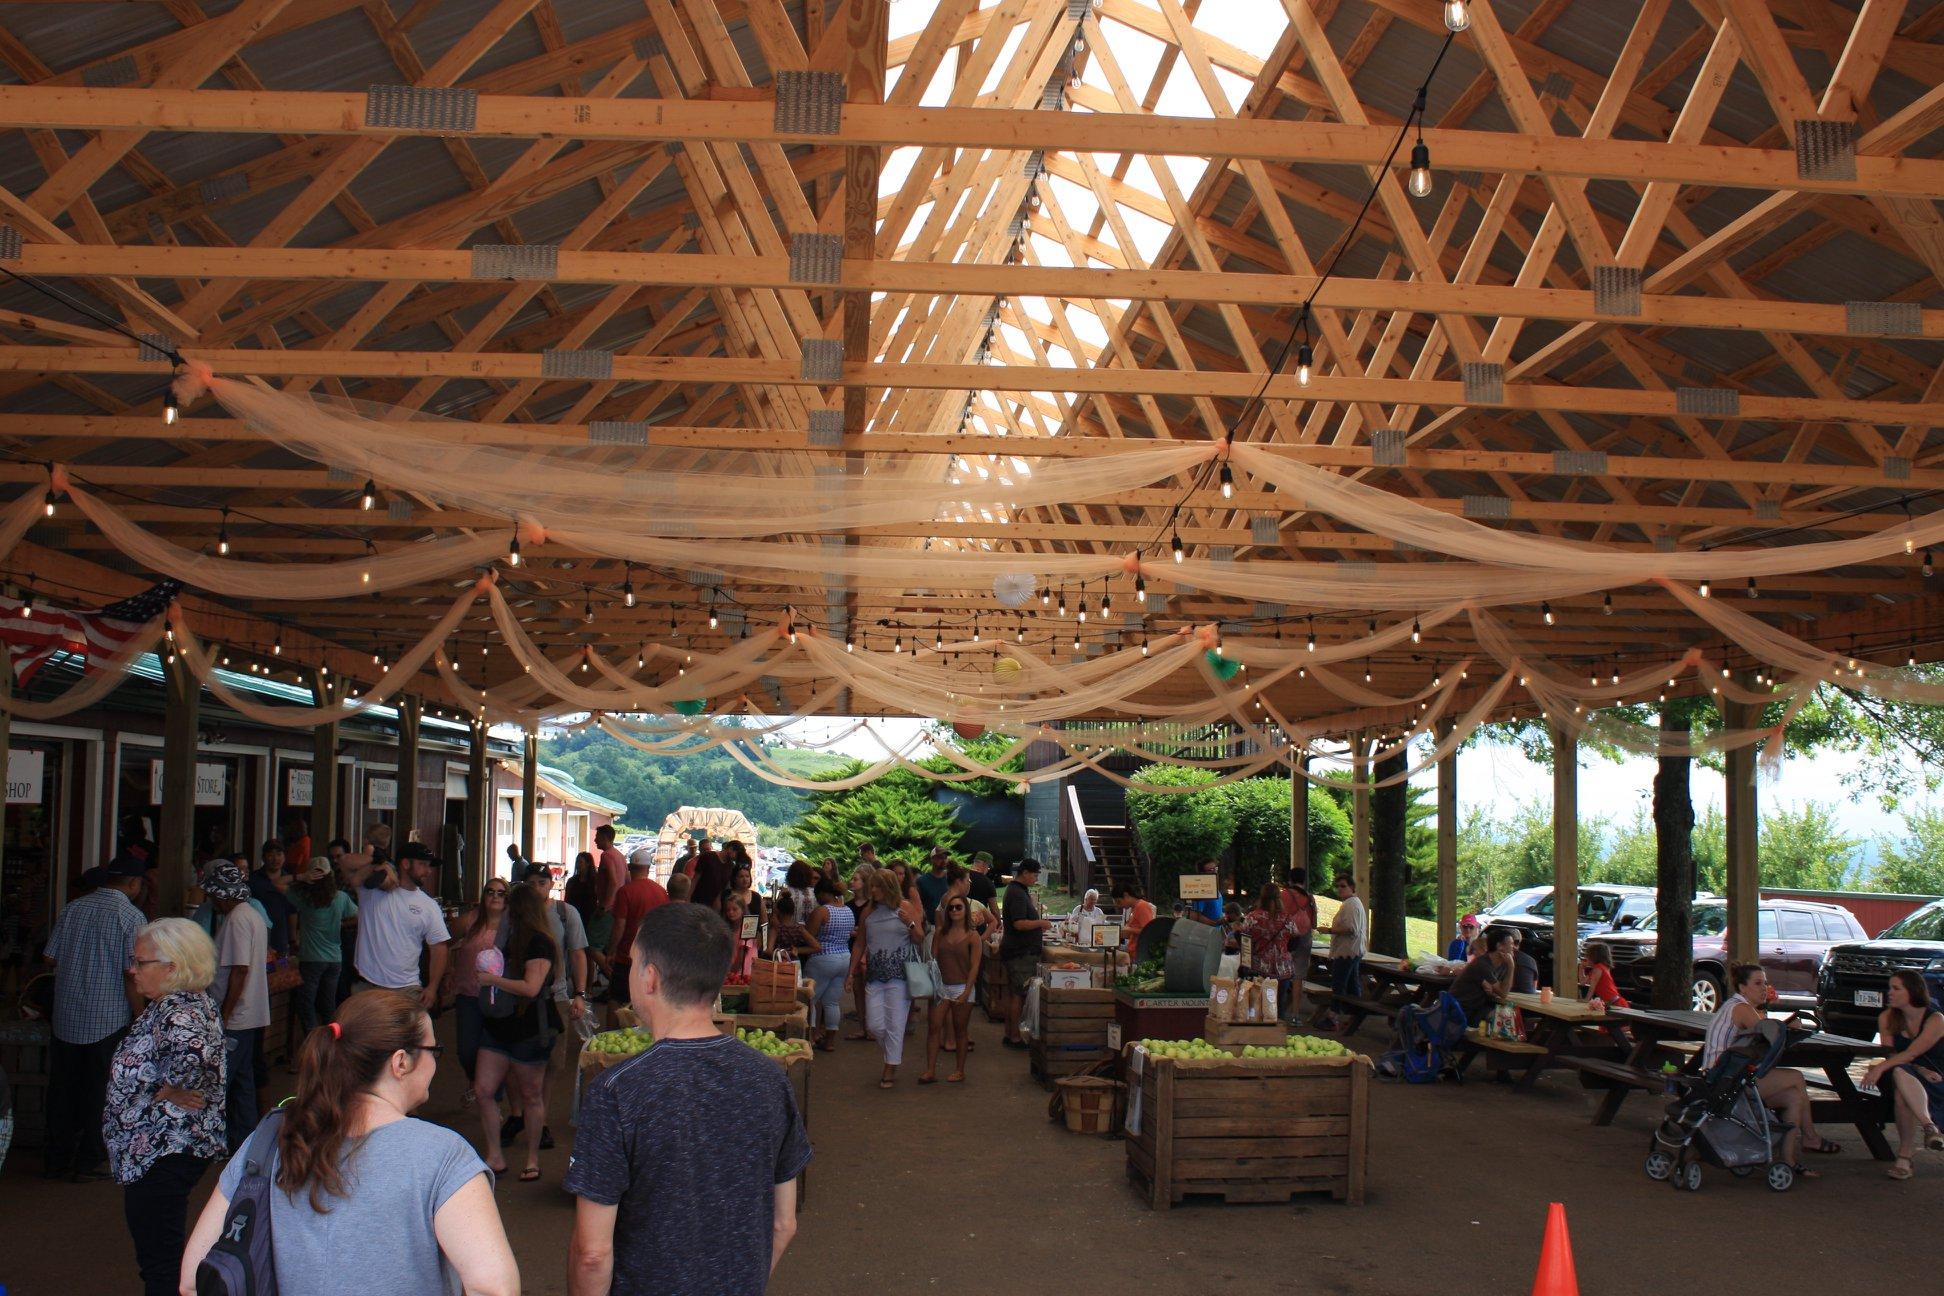 Pavilion covering apple bins and picnic tables at Carter Mountain